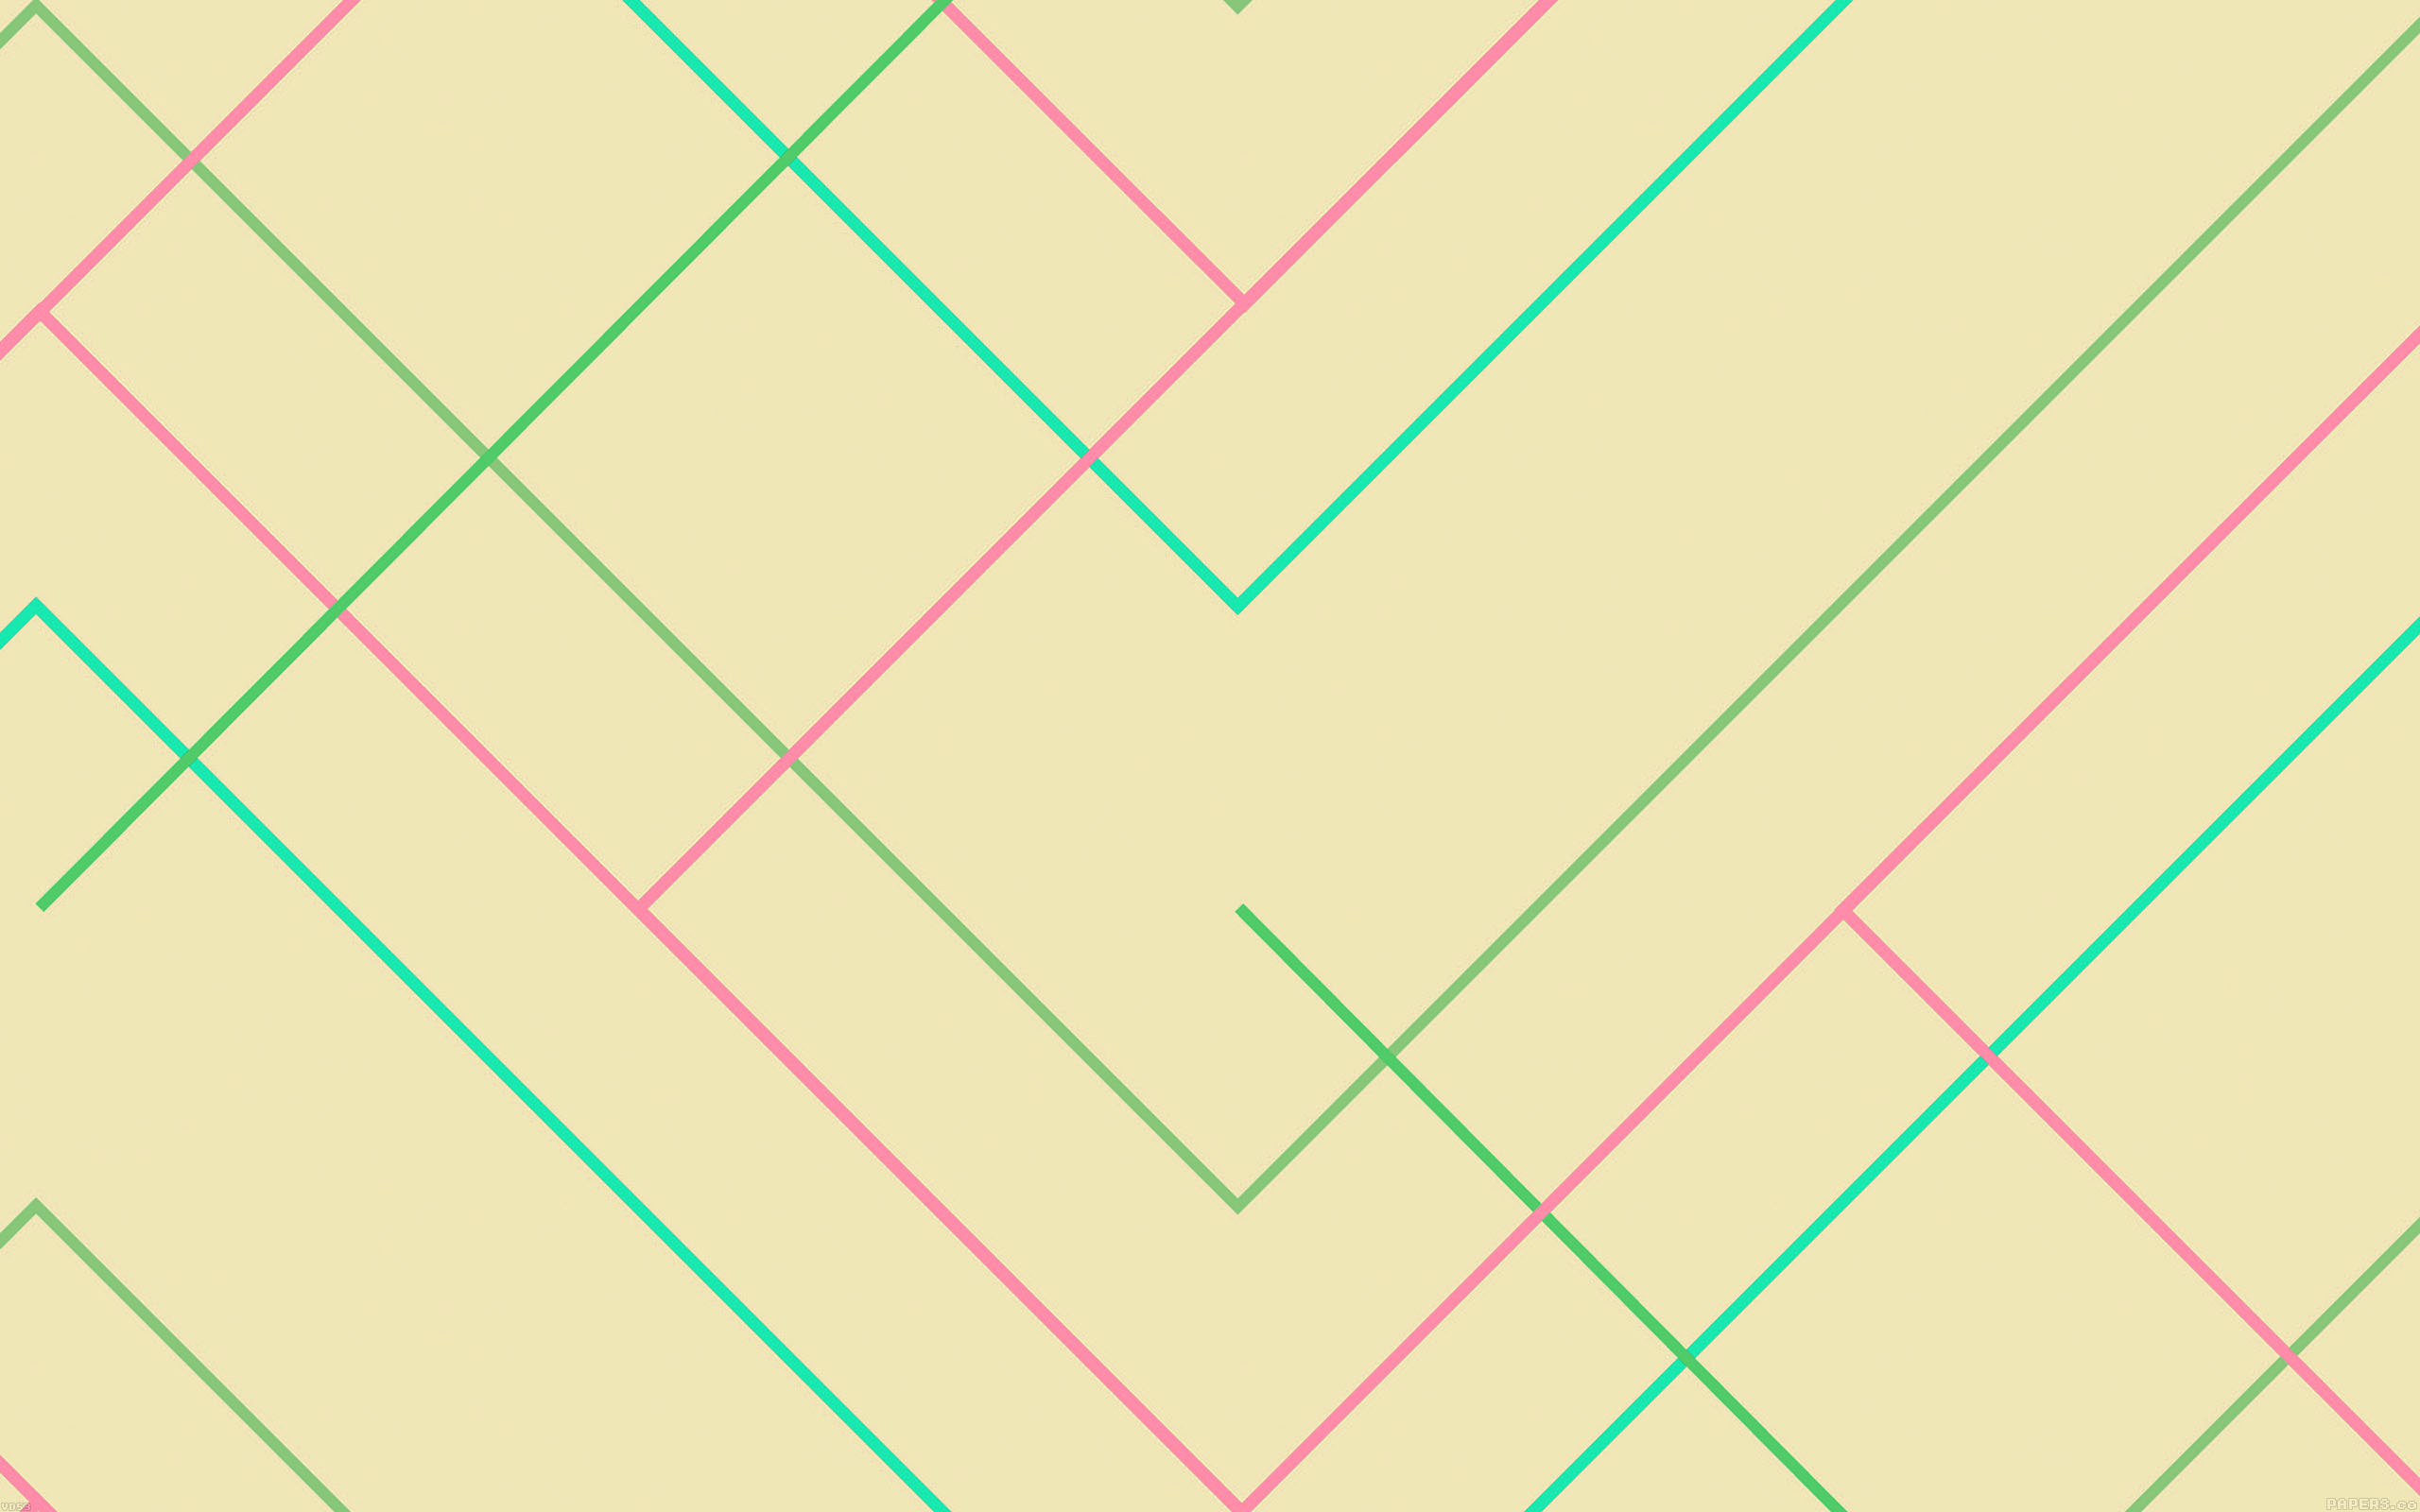 Geometric Line Design Patterns : Vd abstract yellow geometric line pattern